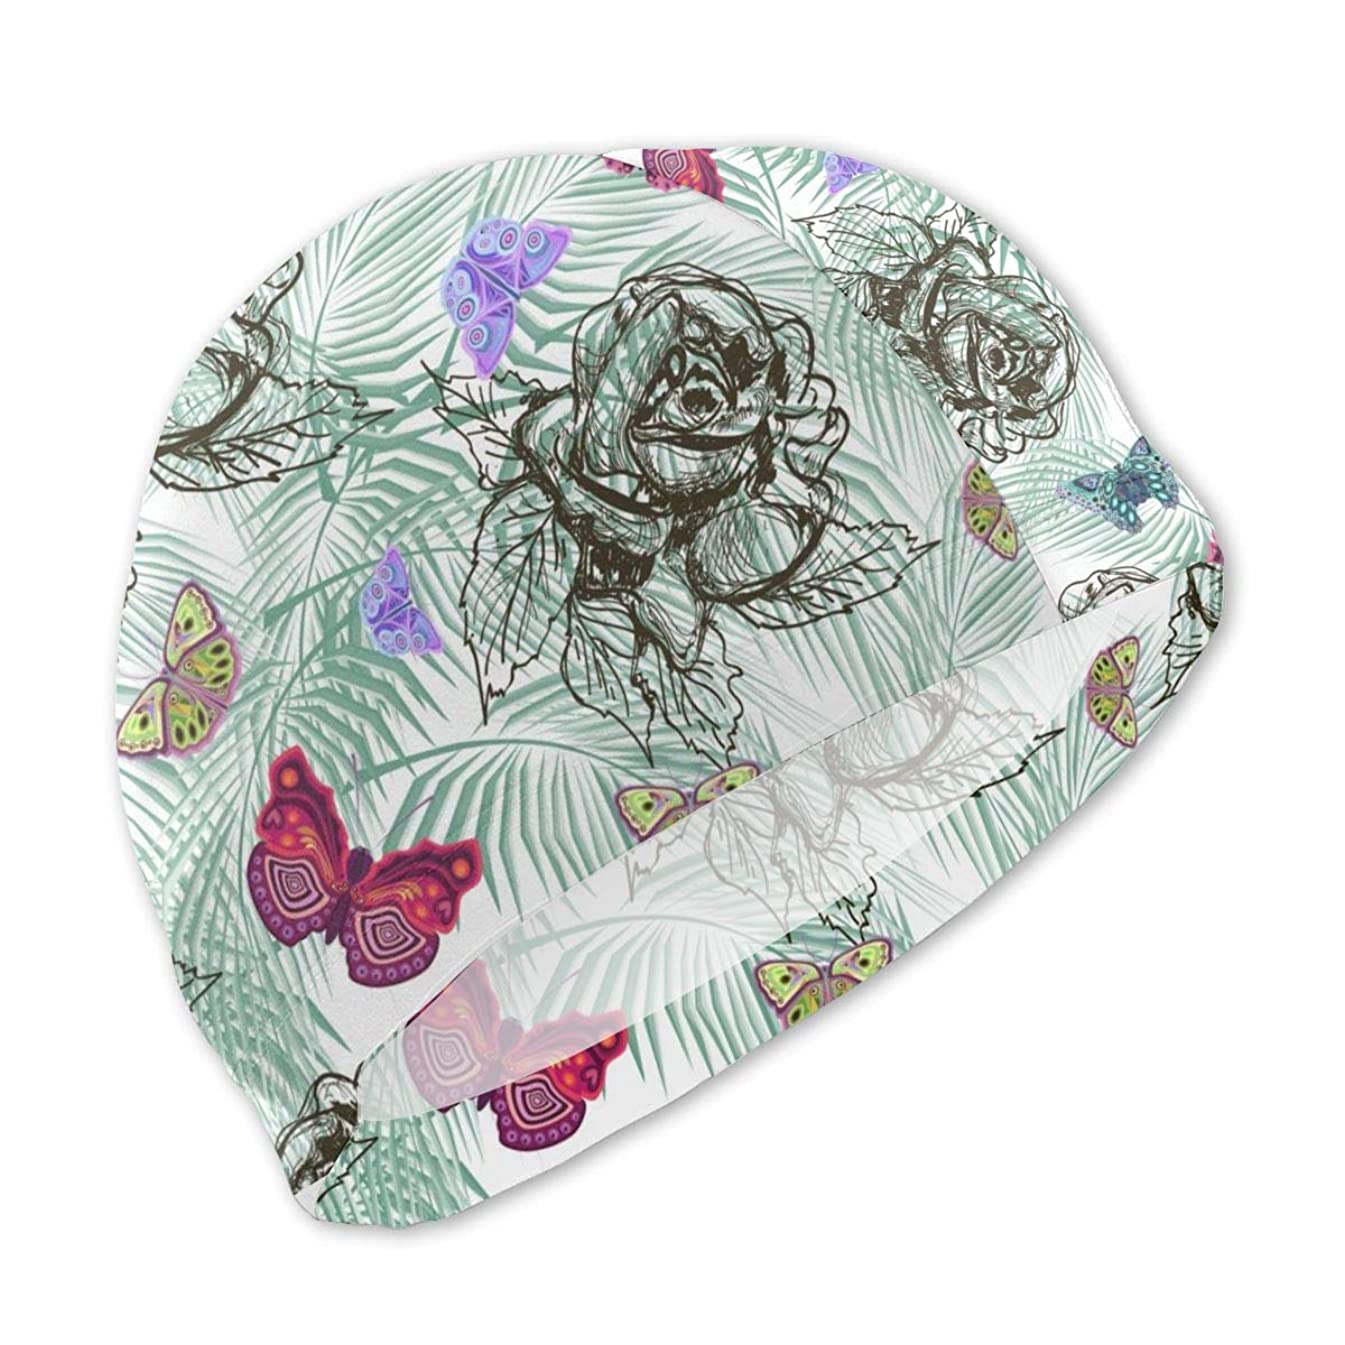 Lanswim Swim Cap for Girls Boys Kids Teens, Waterproof Hair Swimming Caps Special Printed Kids Comfortable Fit Swim Cap for Monochrome Roses and Colorful Butterflies